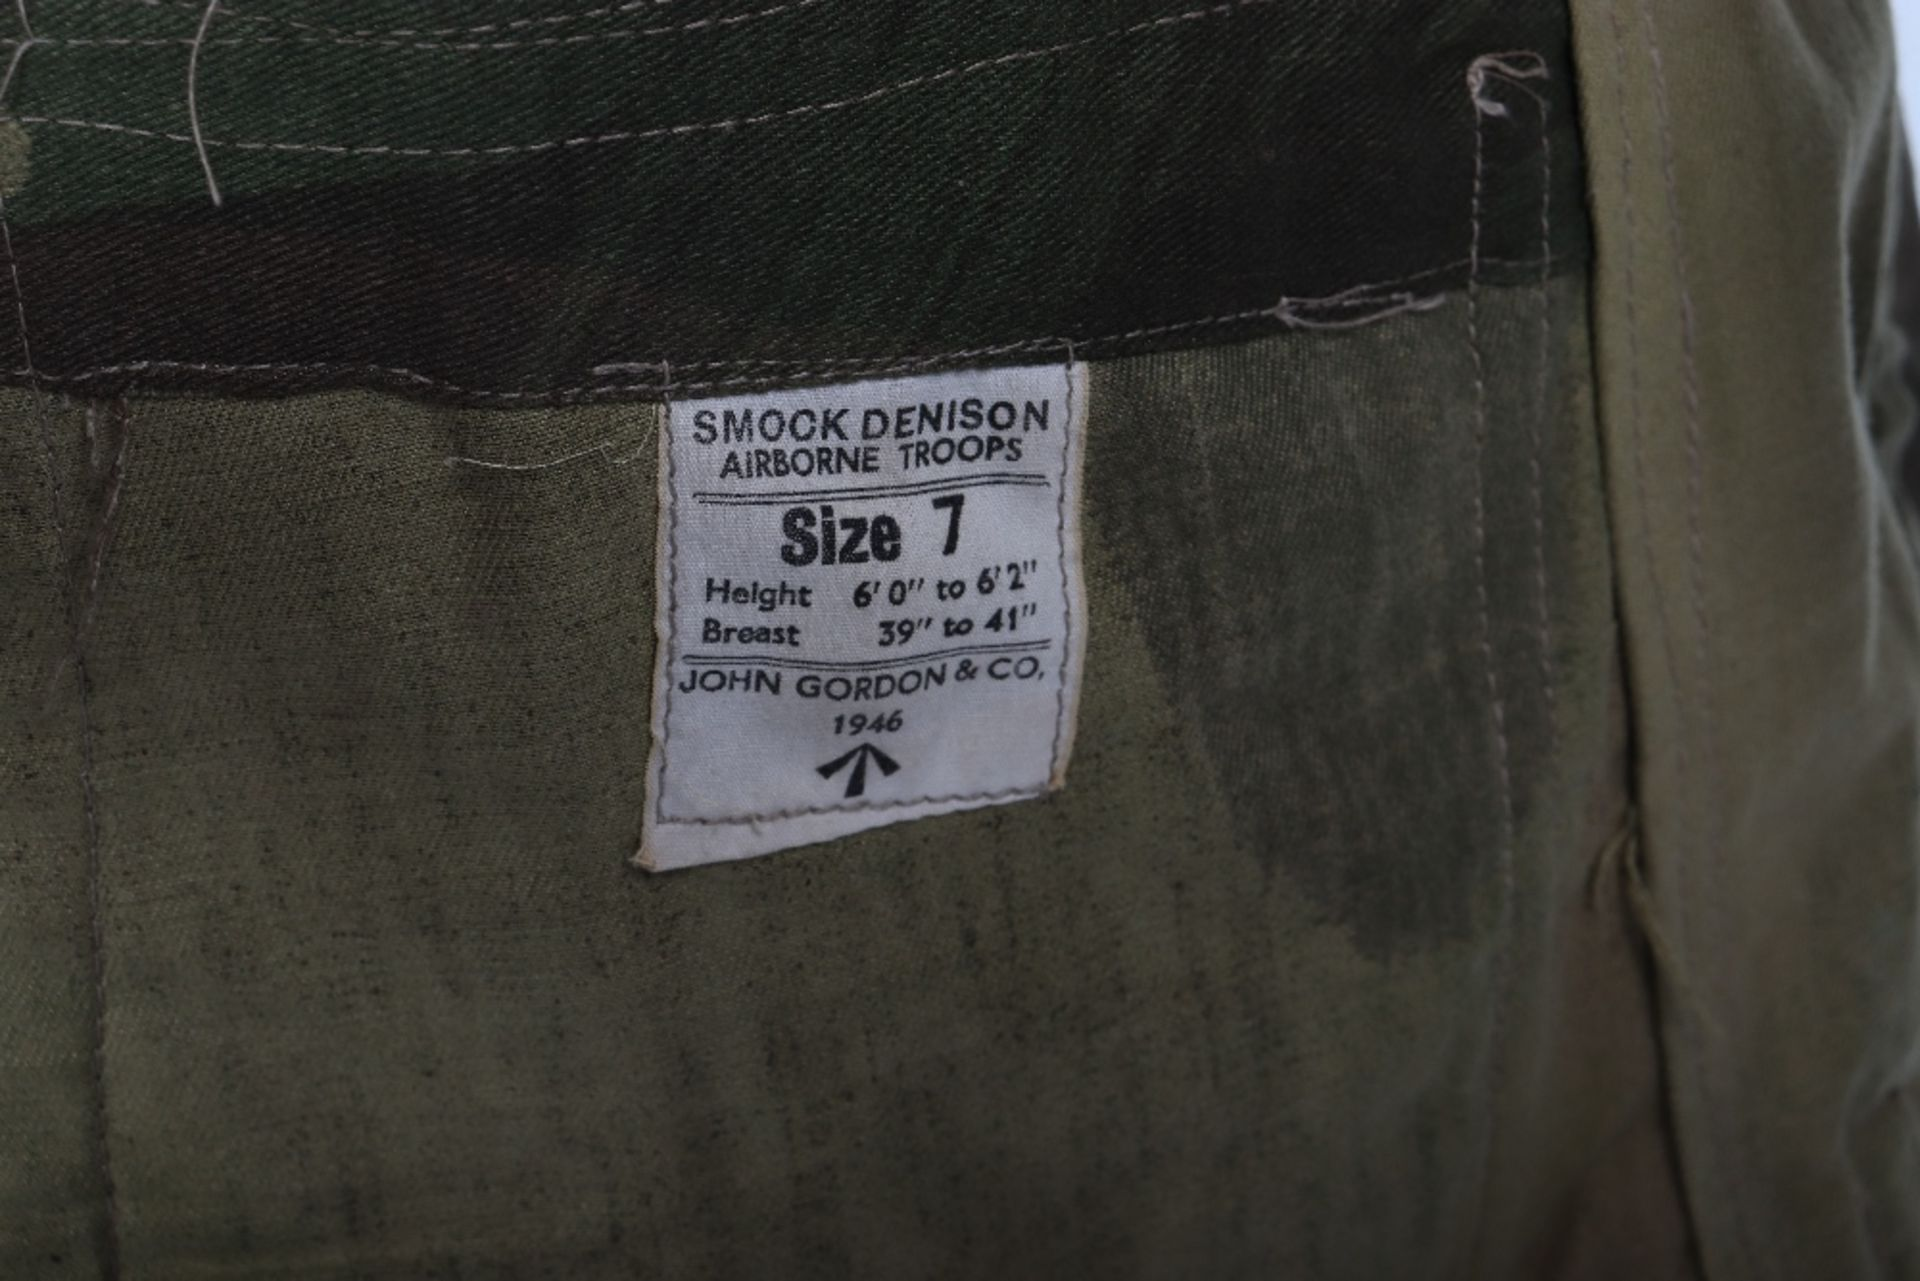 Mint Condition Large Size Airborne Forces Denison Smock - Image 11 of 17